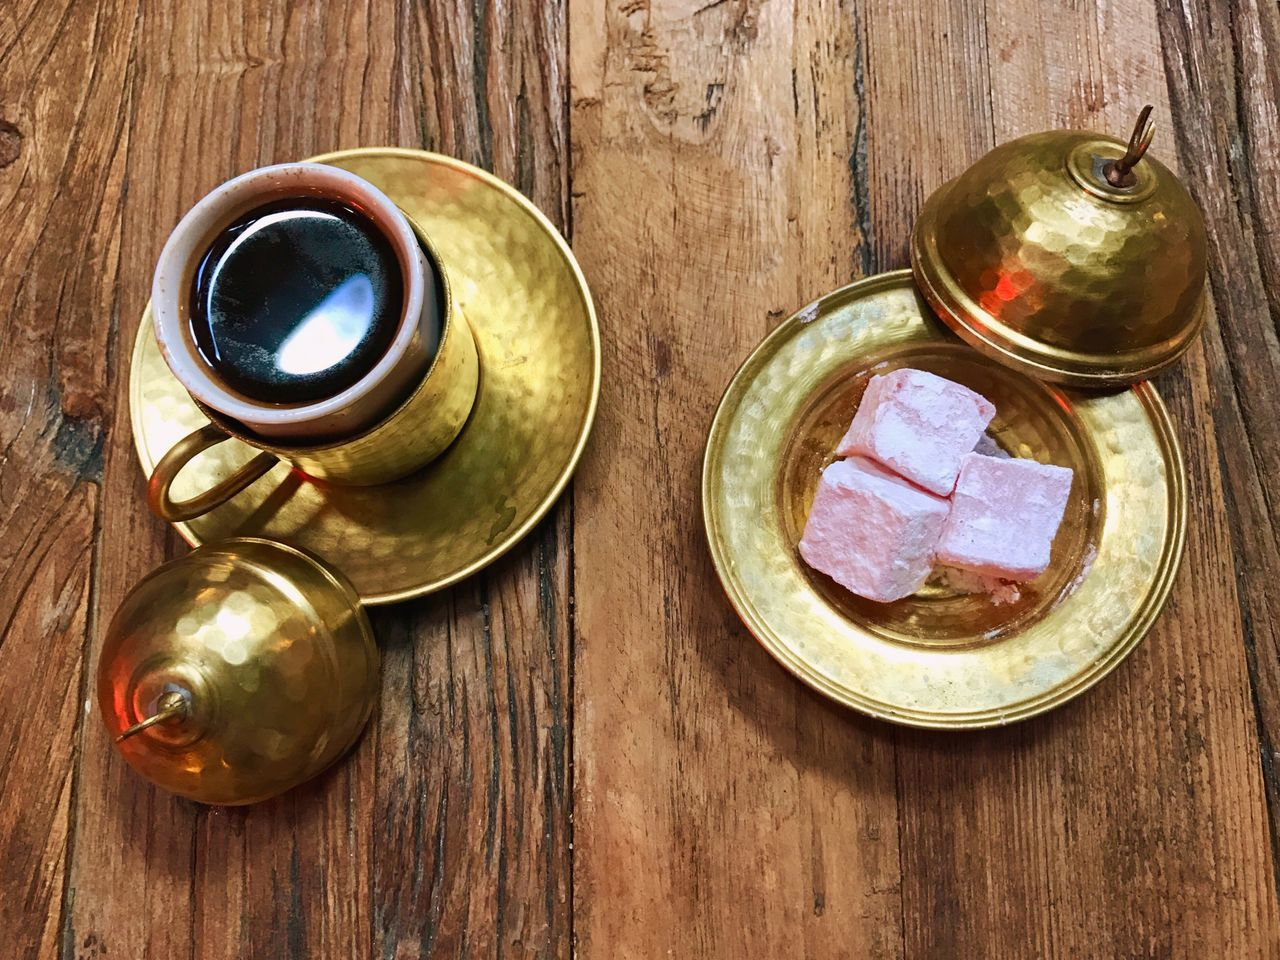 Table Directly Above Wood - Material No People Oriental Turkish Coffee Coffee Sweets Turkish Delight Lokum Old-fashioned EyeEmNewHere